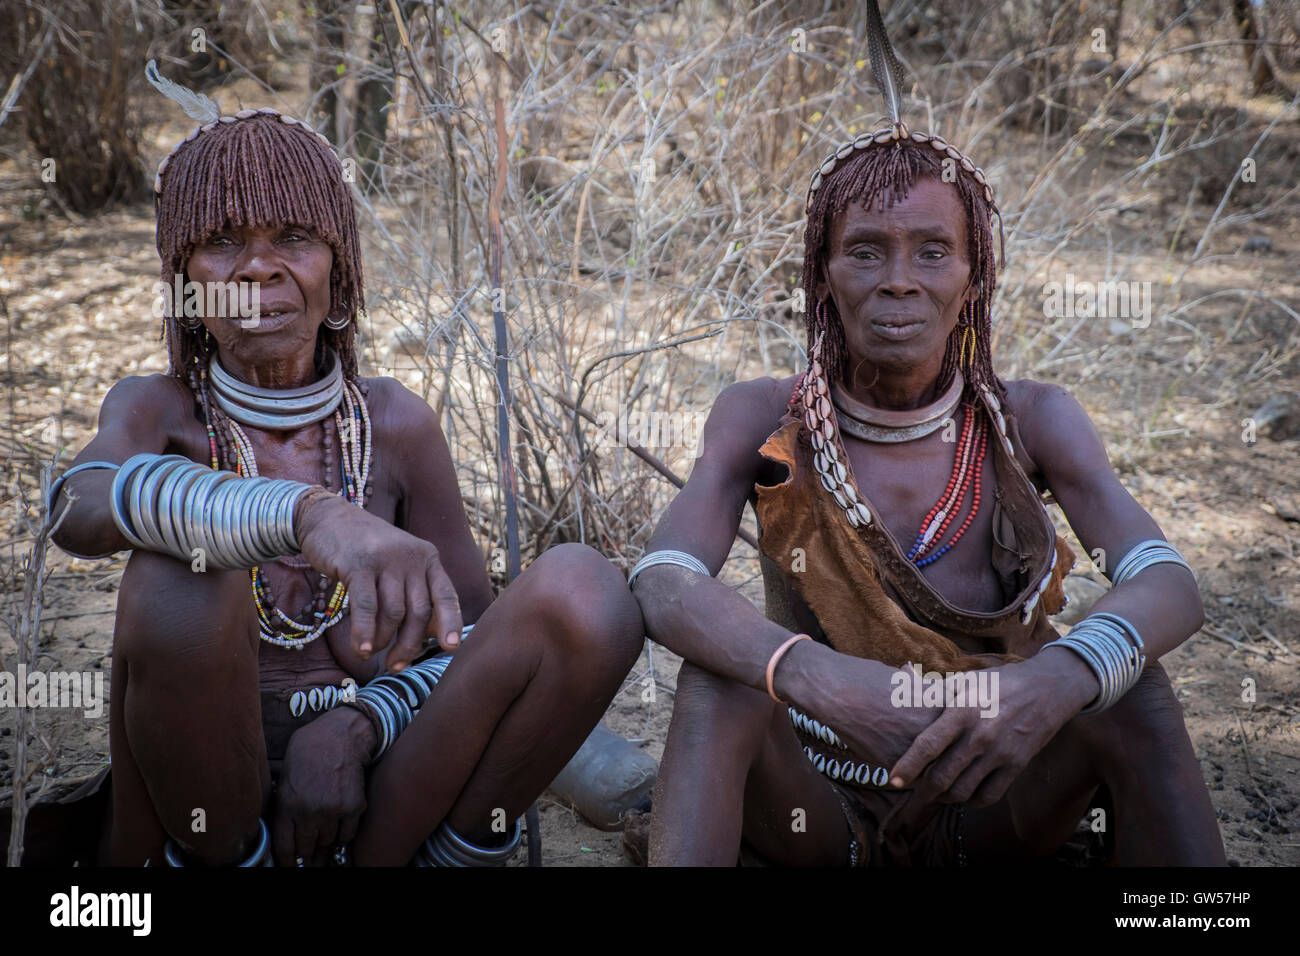 Two women of the Hamer tribe of the Omo Valley in Ethiopia adorned with braided hair and extensive adornments - Stock Image